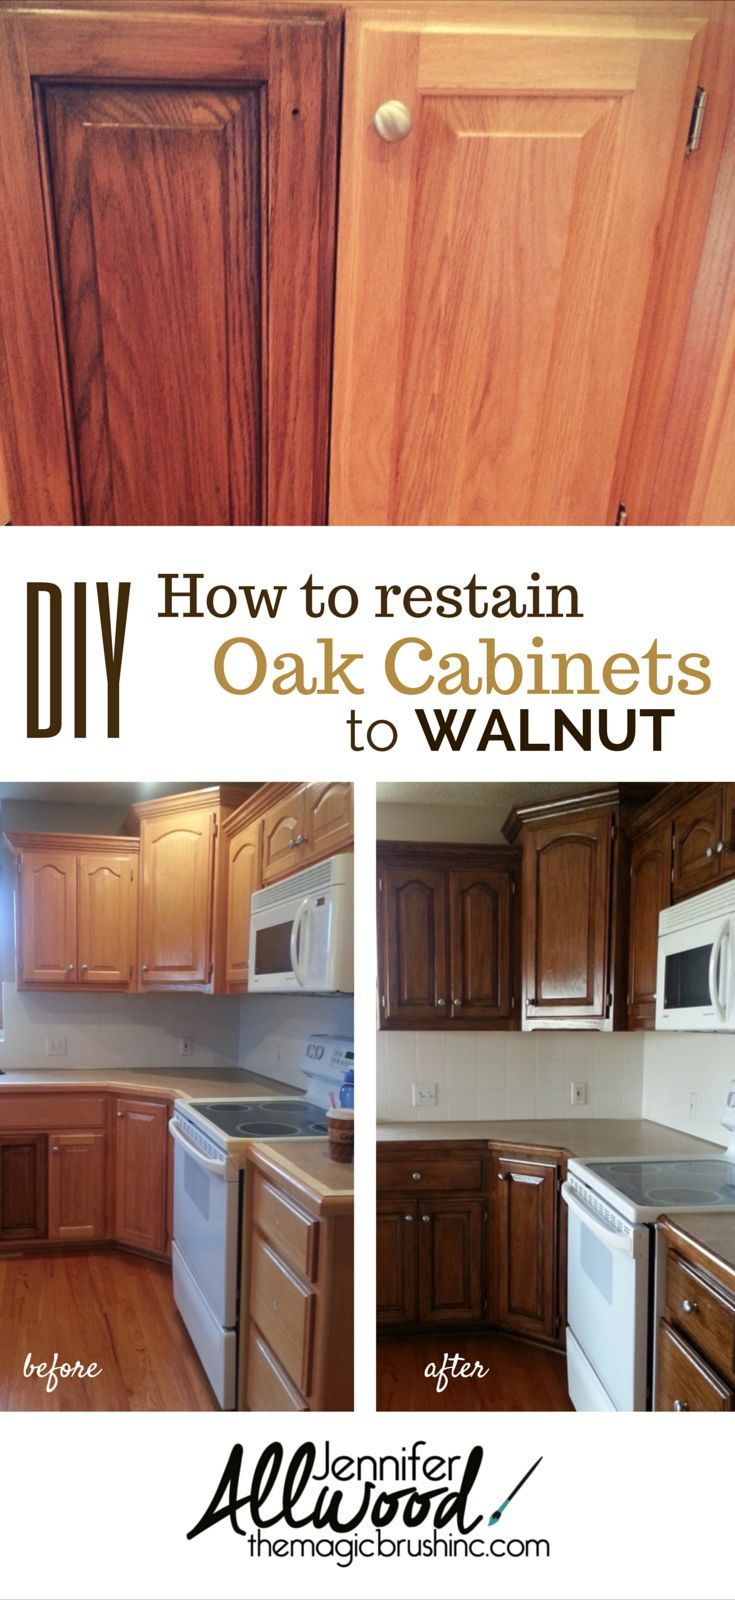 Updating Oak Kitchen Cabinets Best 25 Updating Oak Cabinets Ideas On Pinterest Painting Oak